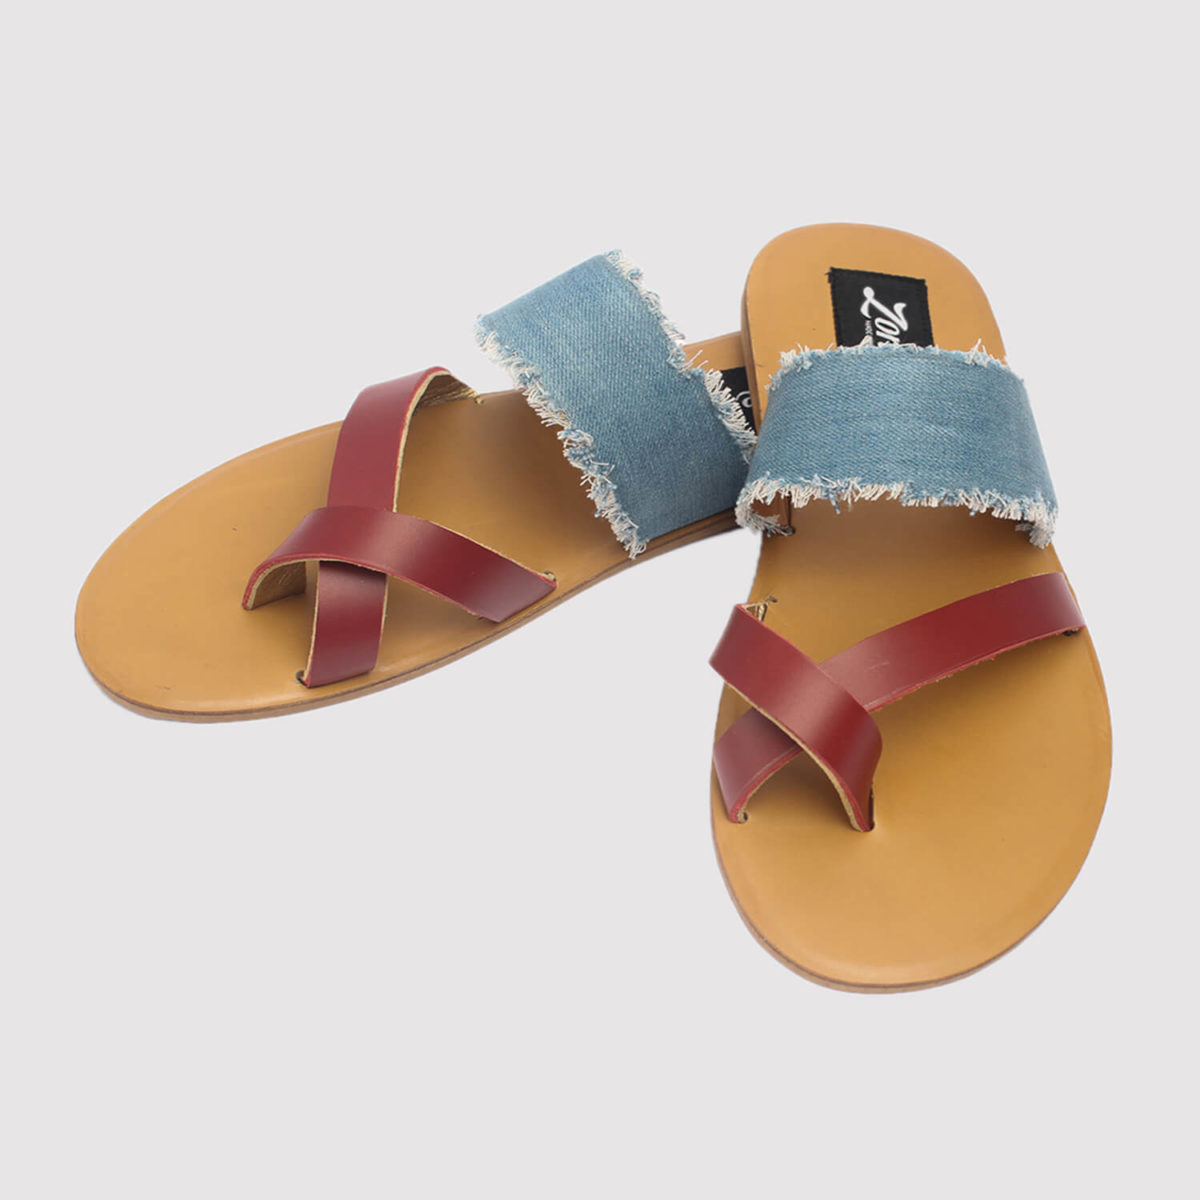 juss denim arc slippers red leather by zorkle shoes lagos nigeria